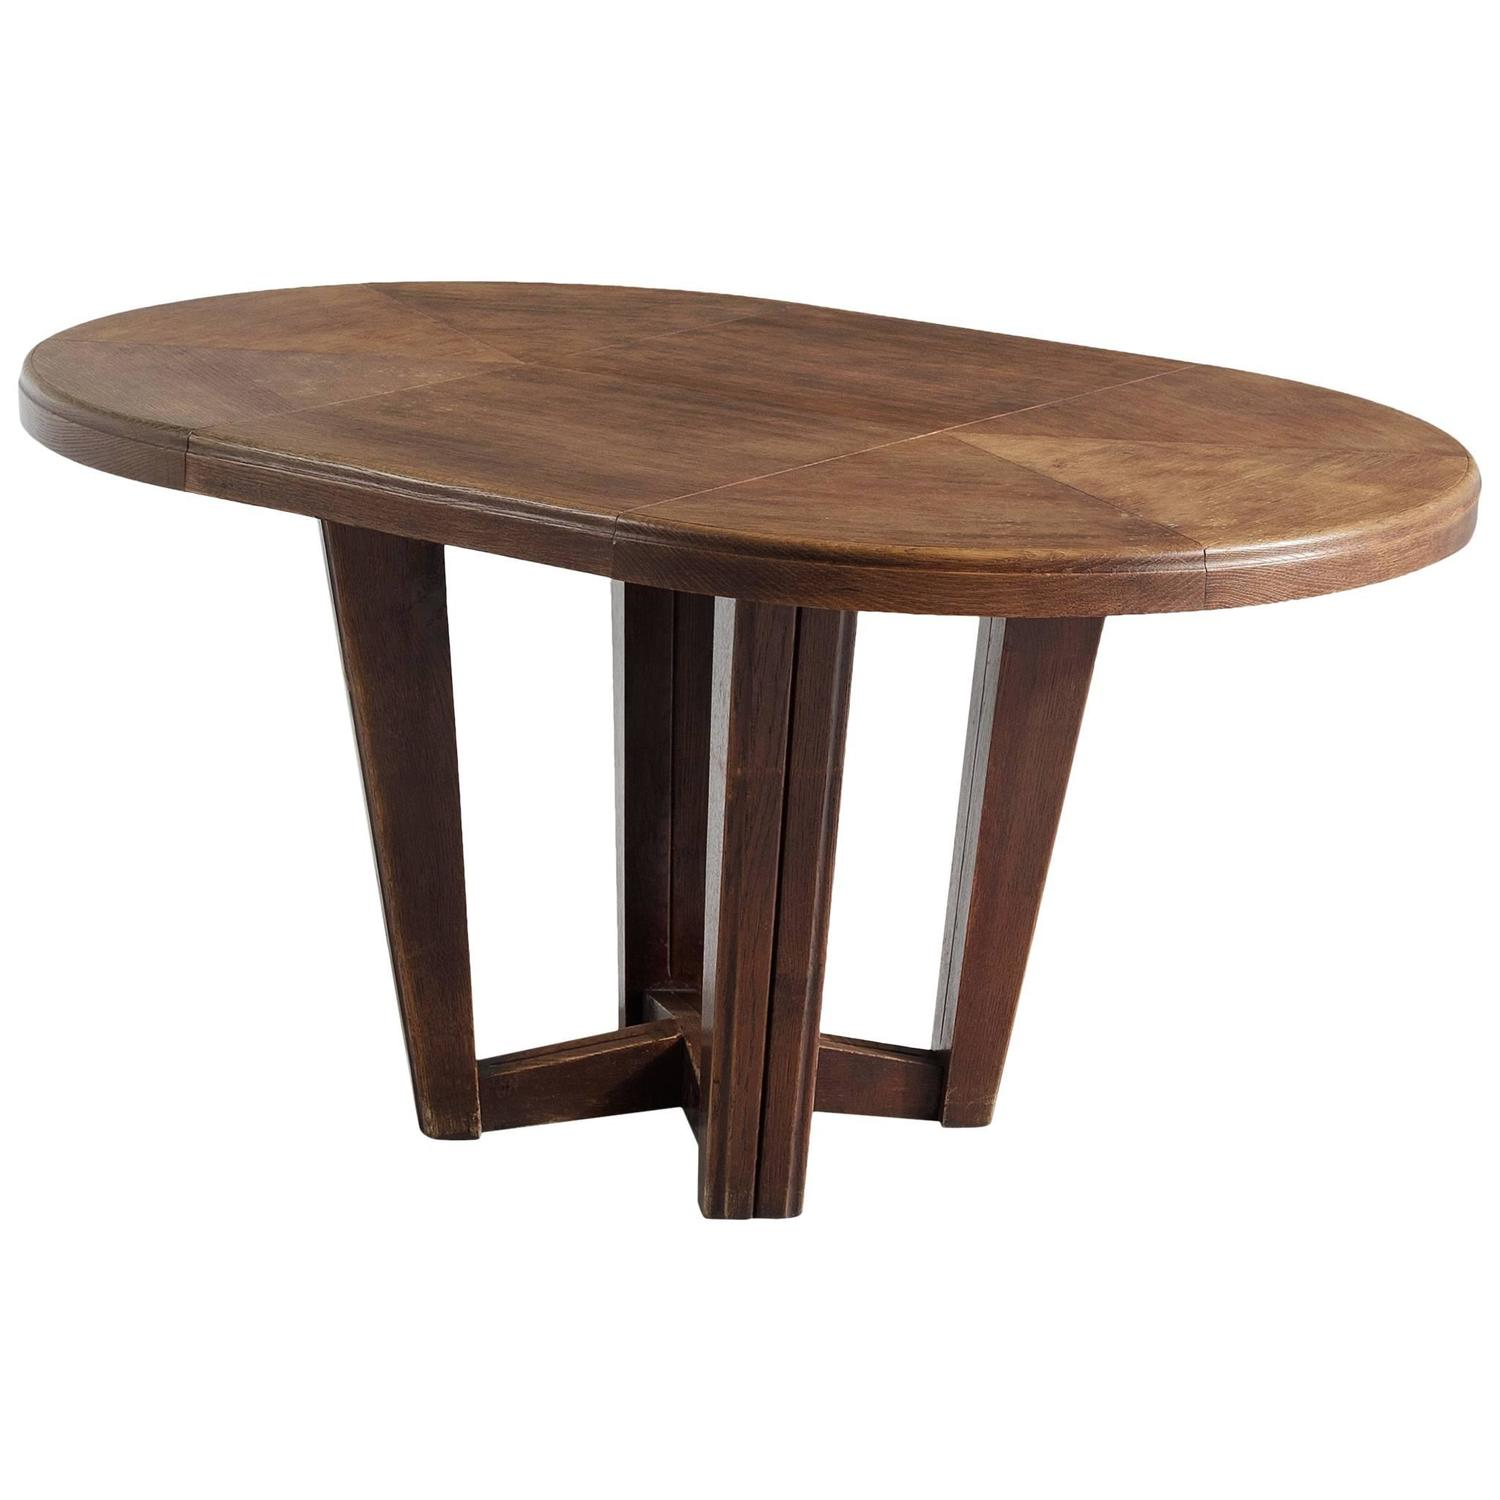 Oval Dining Room Table: Small Oval Dining Table In Solid Oak For Sale At 1stdibs